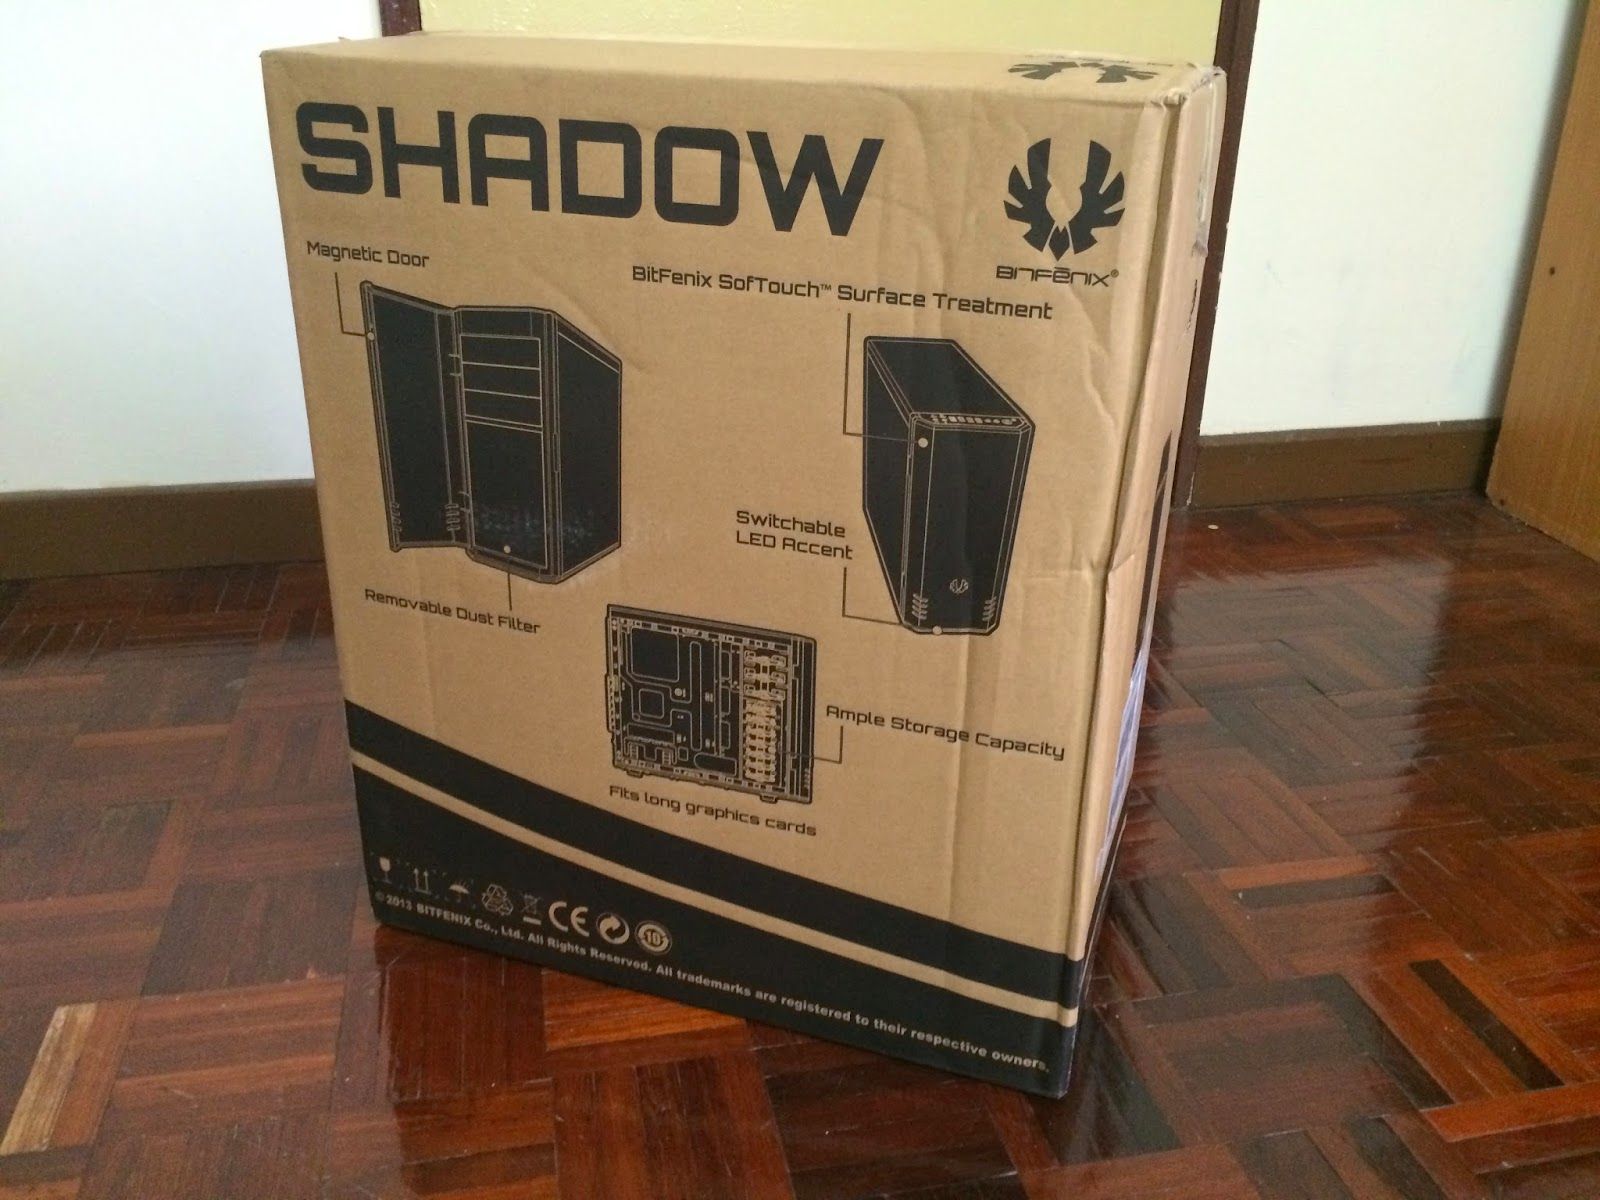 Unboxing & Review: Bitfenix Shadow 87